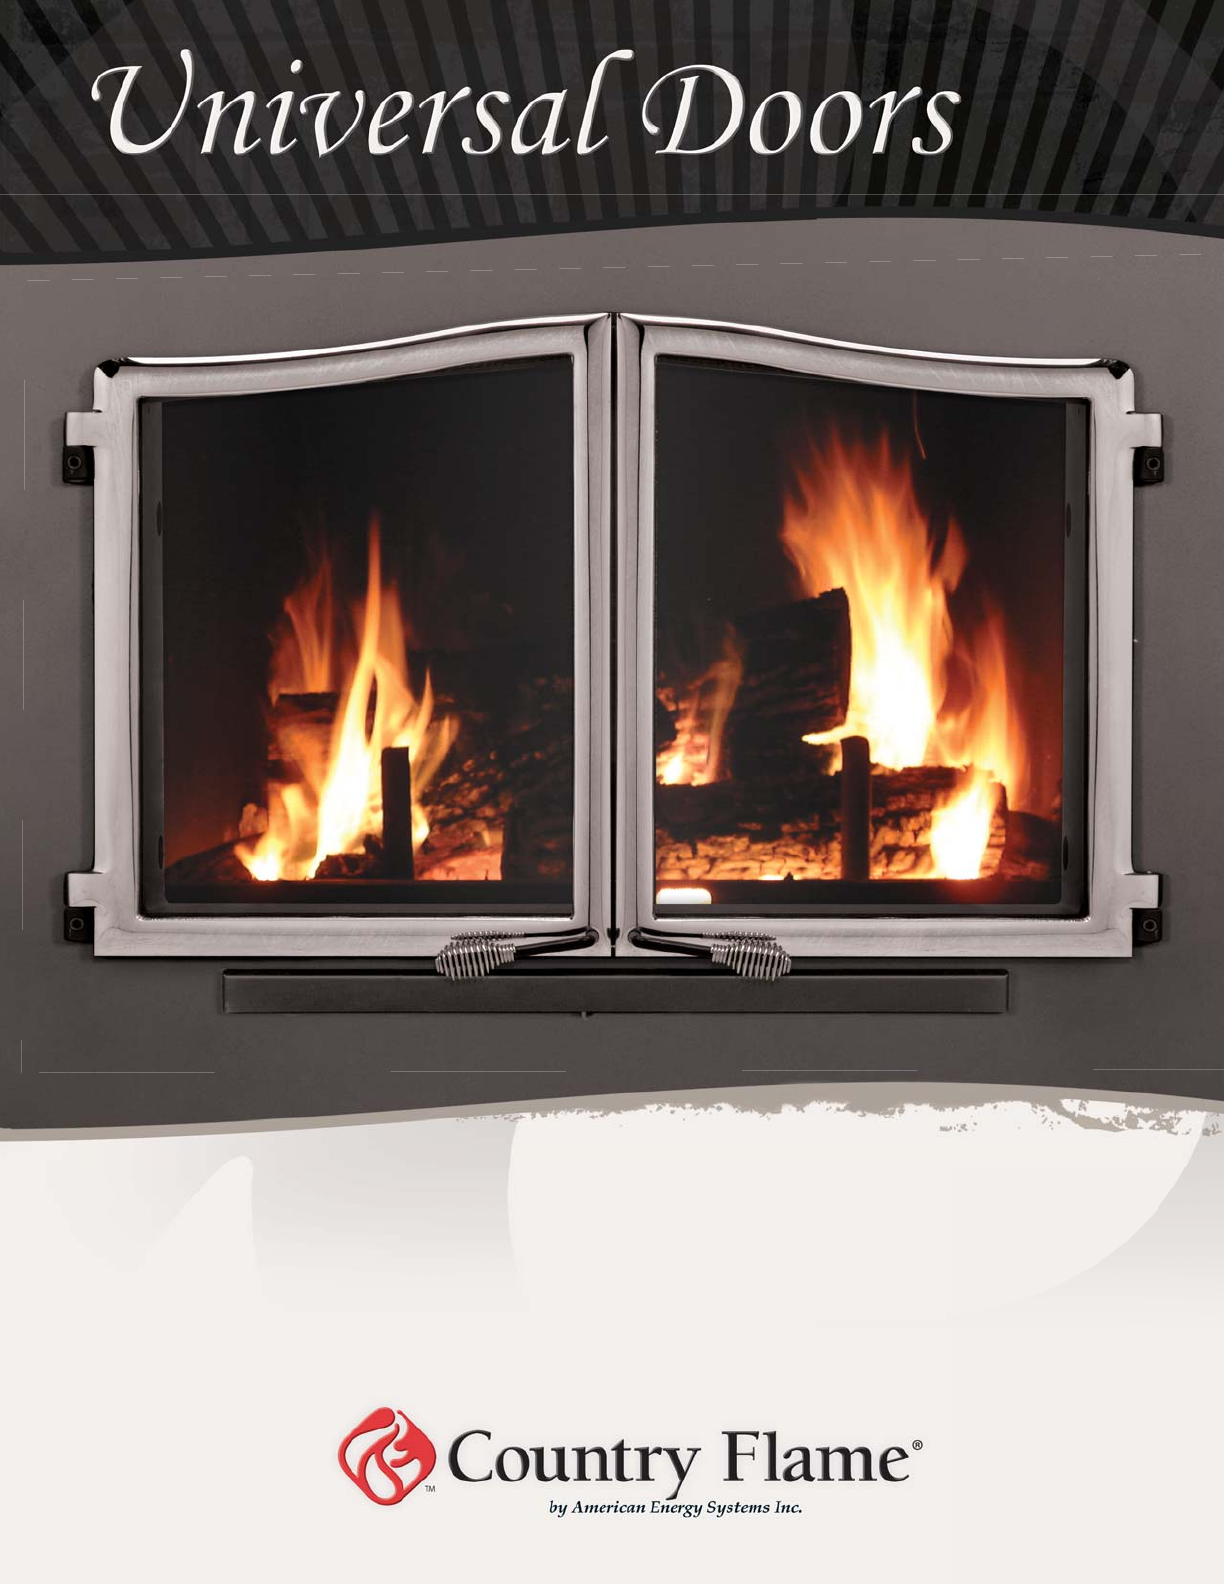 Country flame indoor fireplace 400 series user guide manualsonline v1005 eventshaper